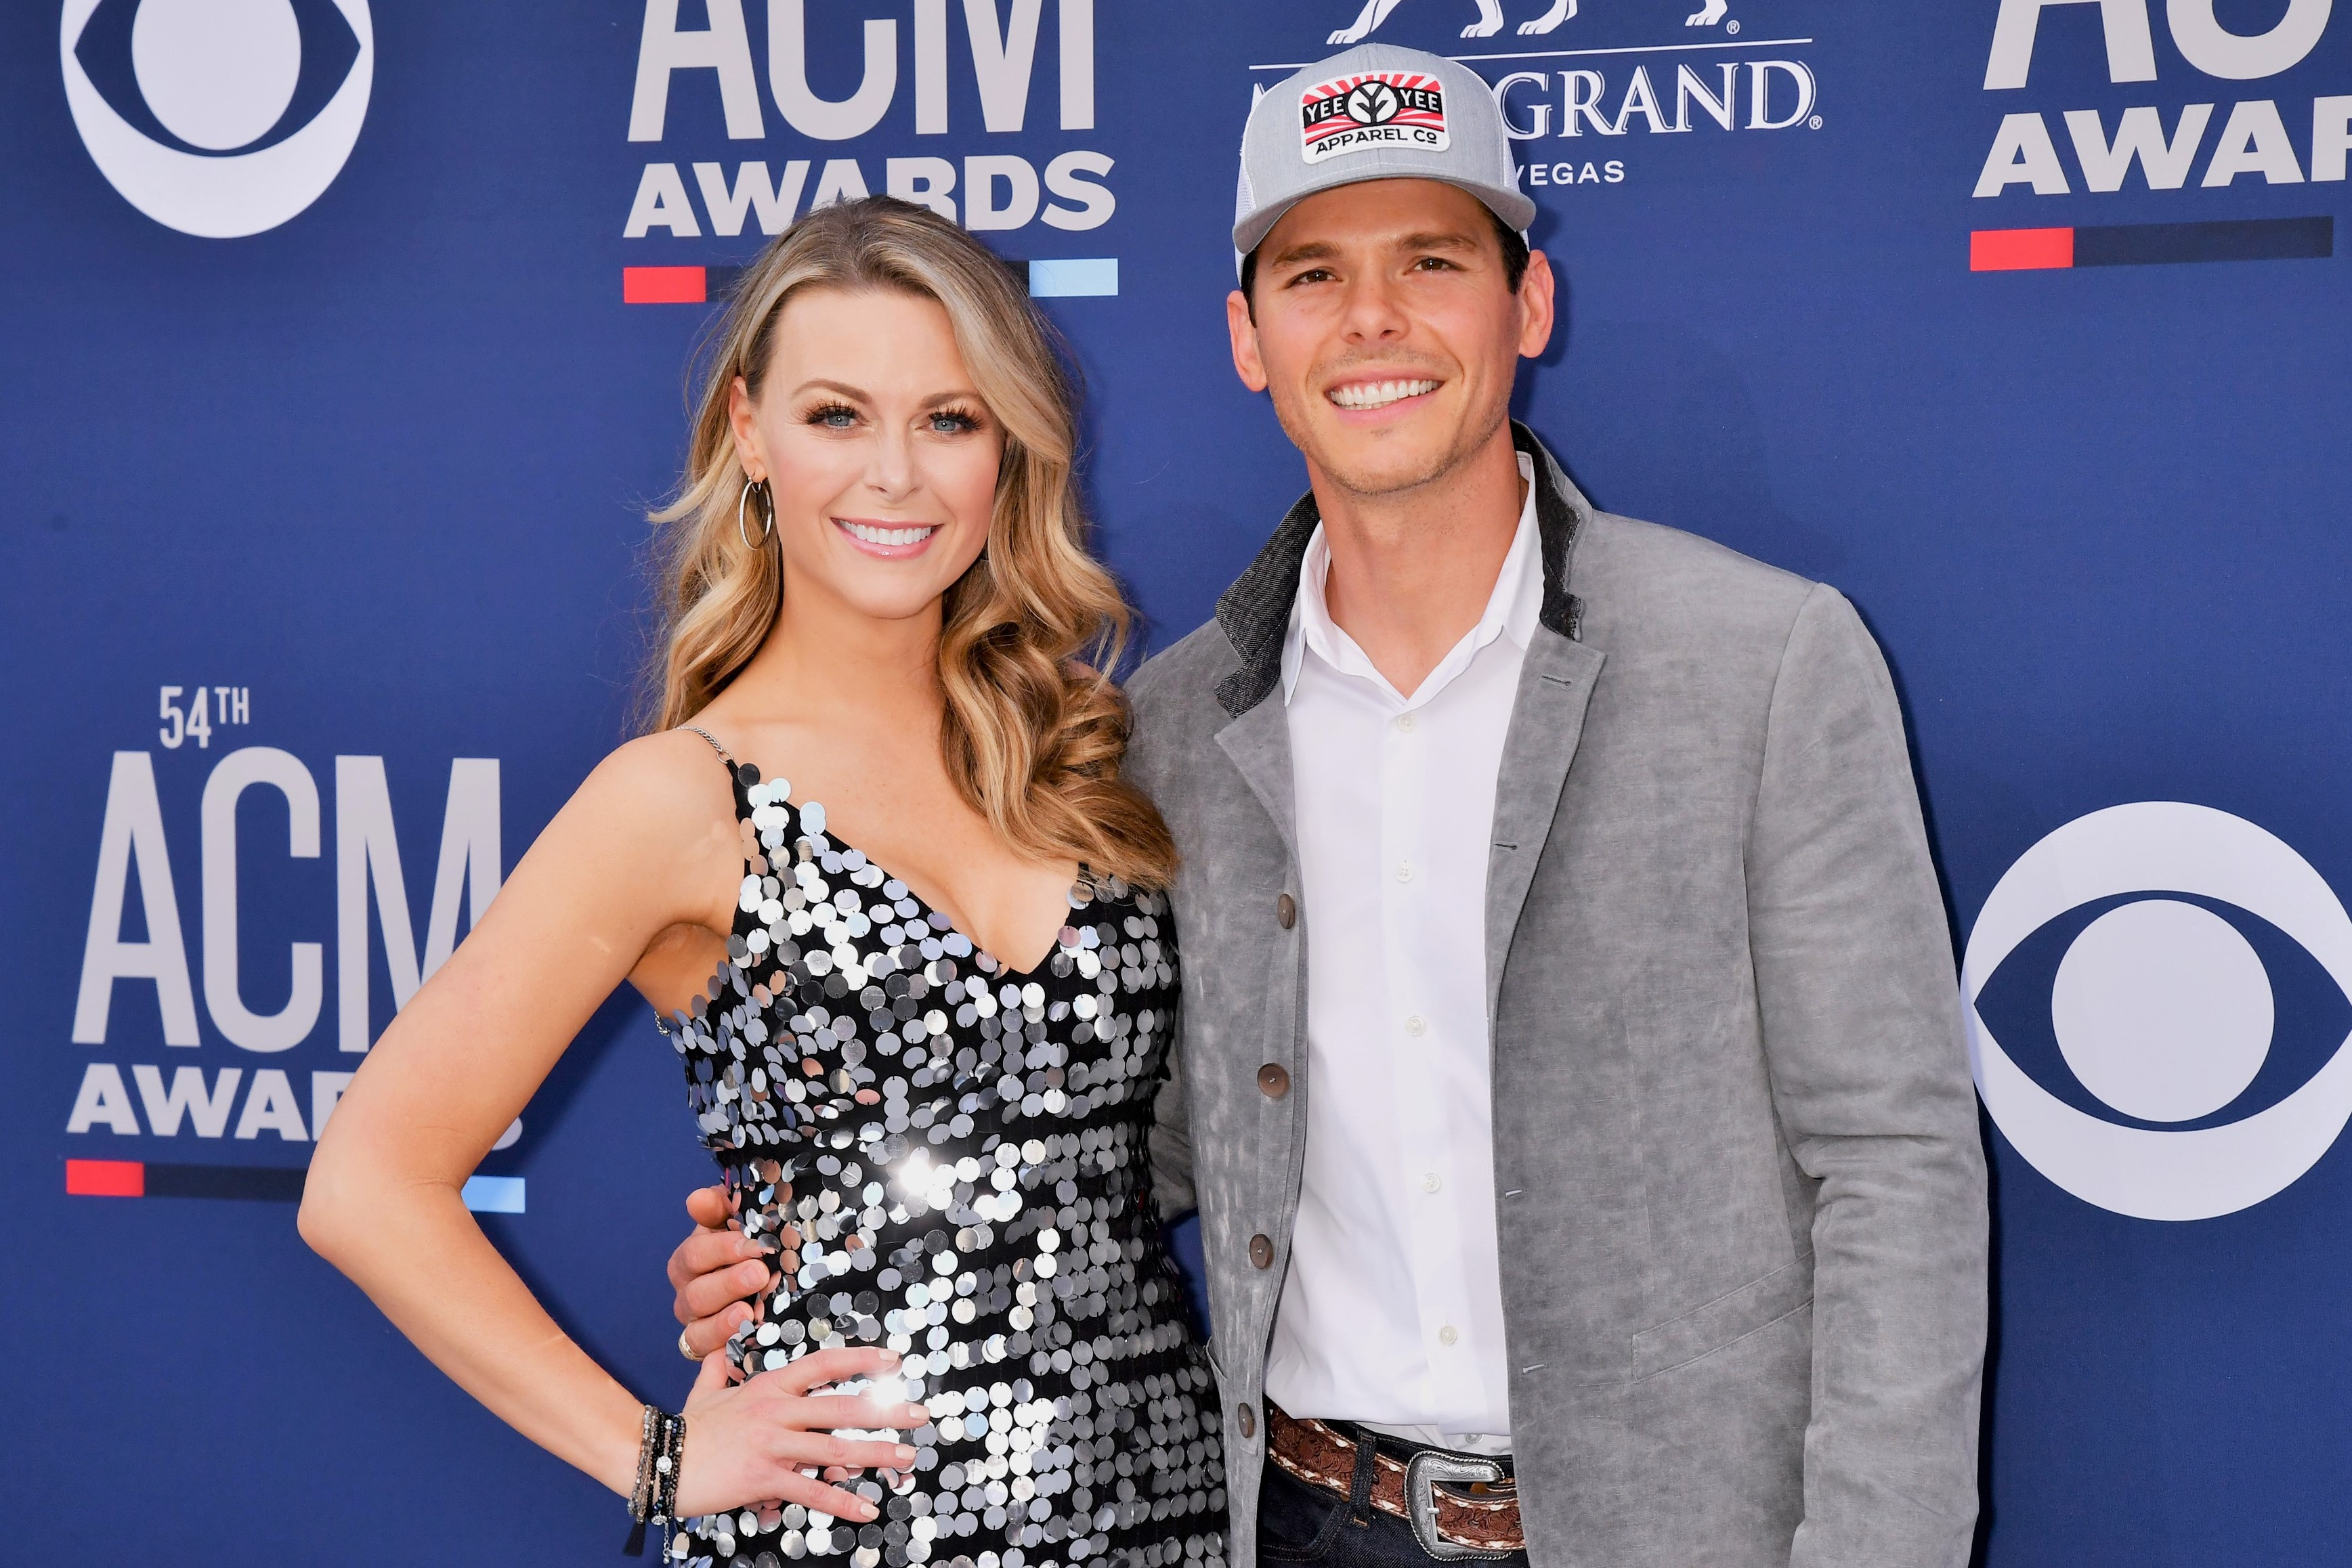 Amber Bartlett and Granger Smith Academy Of Country Music Award